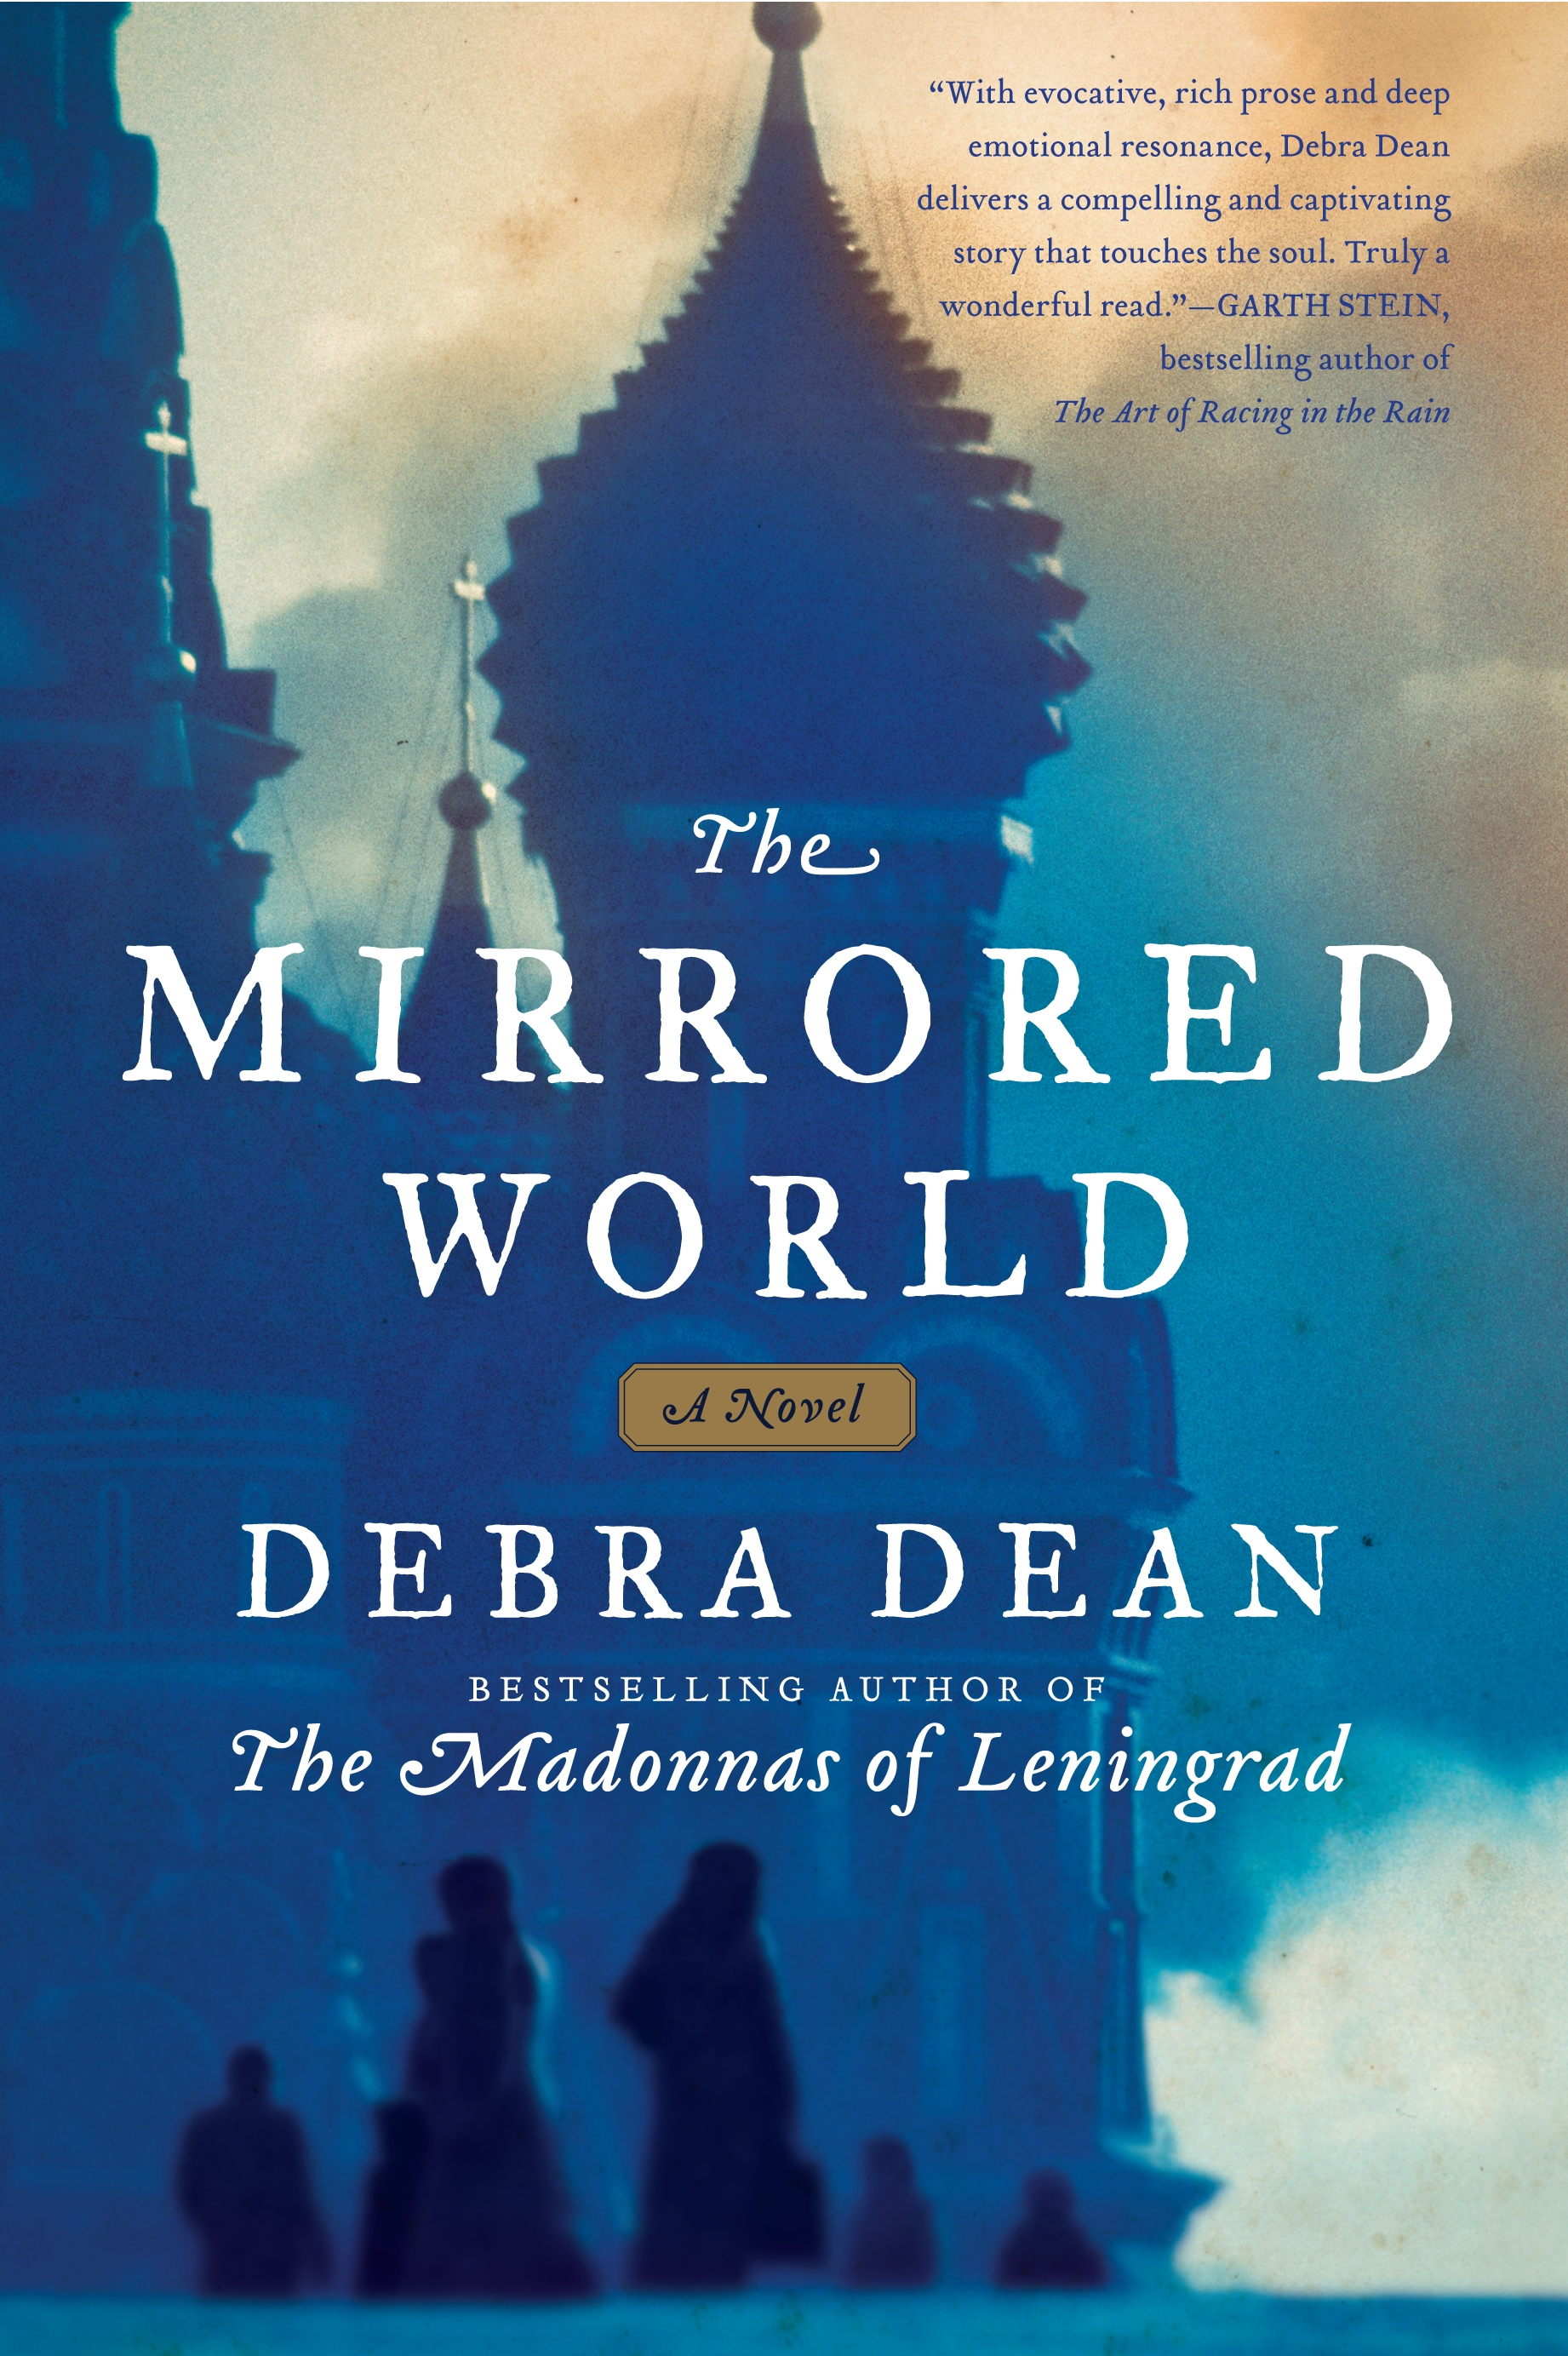 The Mirrored World, HarperCollins, 2012